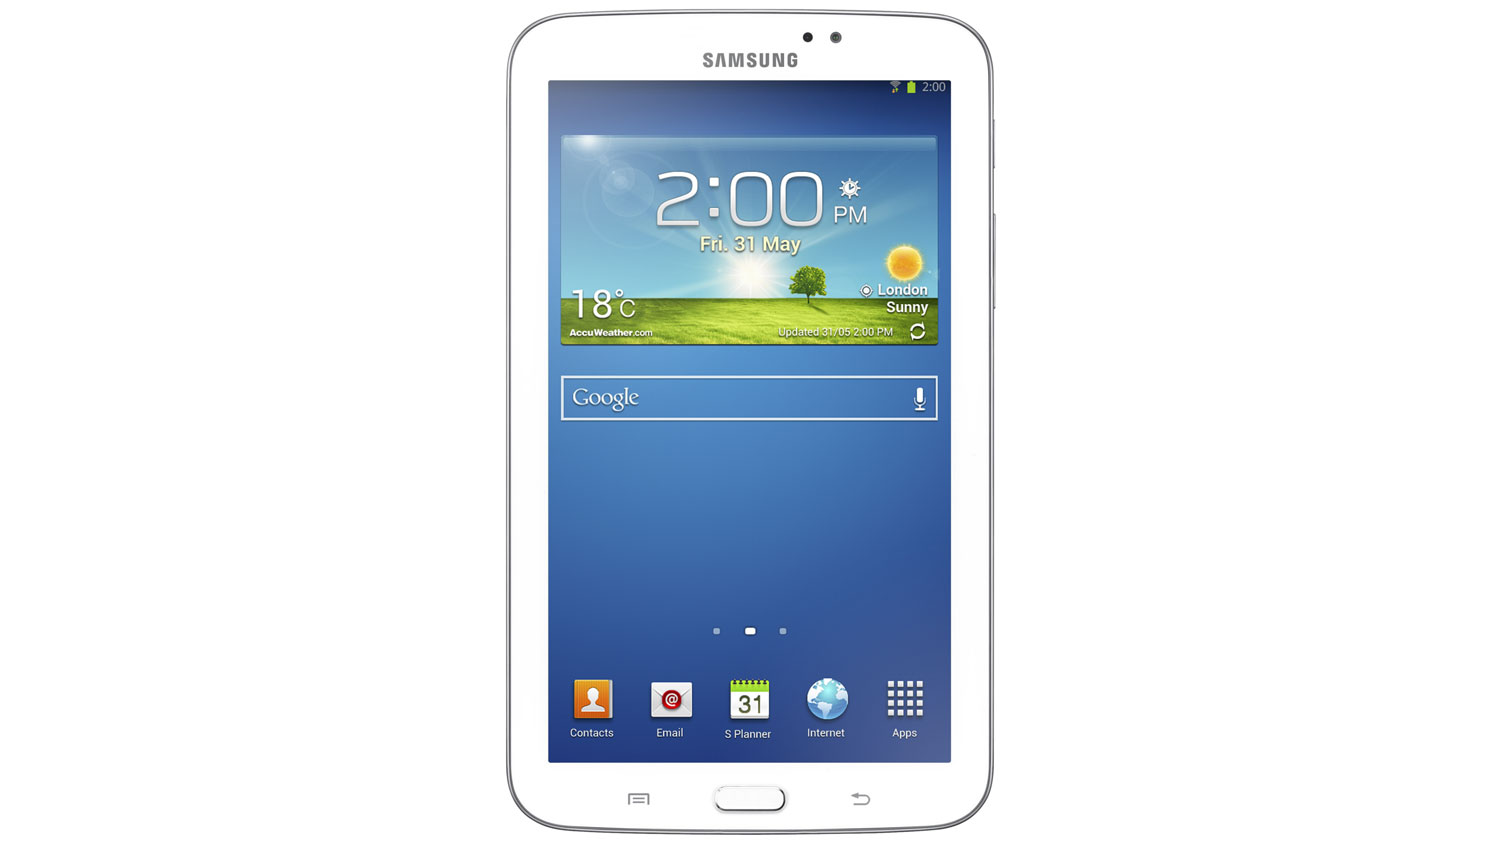 The best Samsung Galaxy Tab deals on Amazon Prime Day 2018 1531414746_191_the-best-samsung-galaxy-tab-deals-on-amazon-prime-day-2018